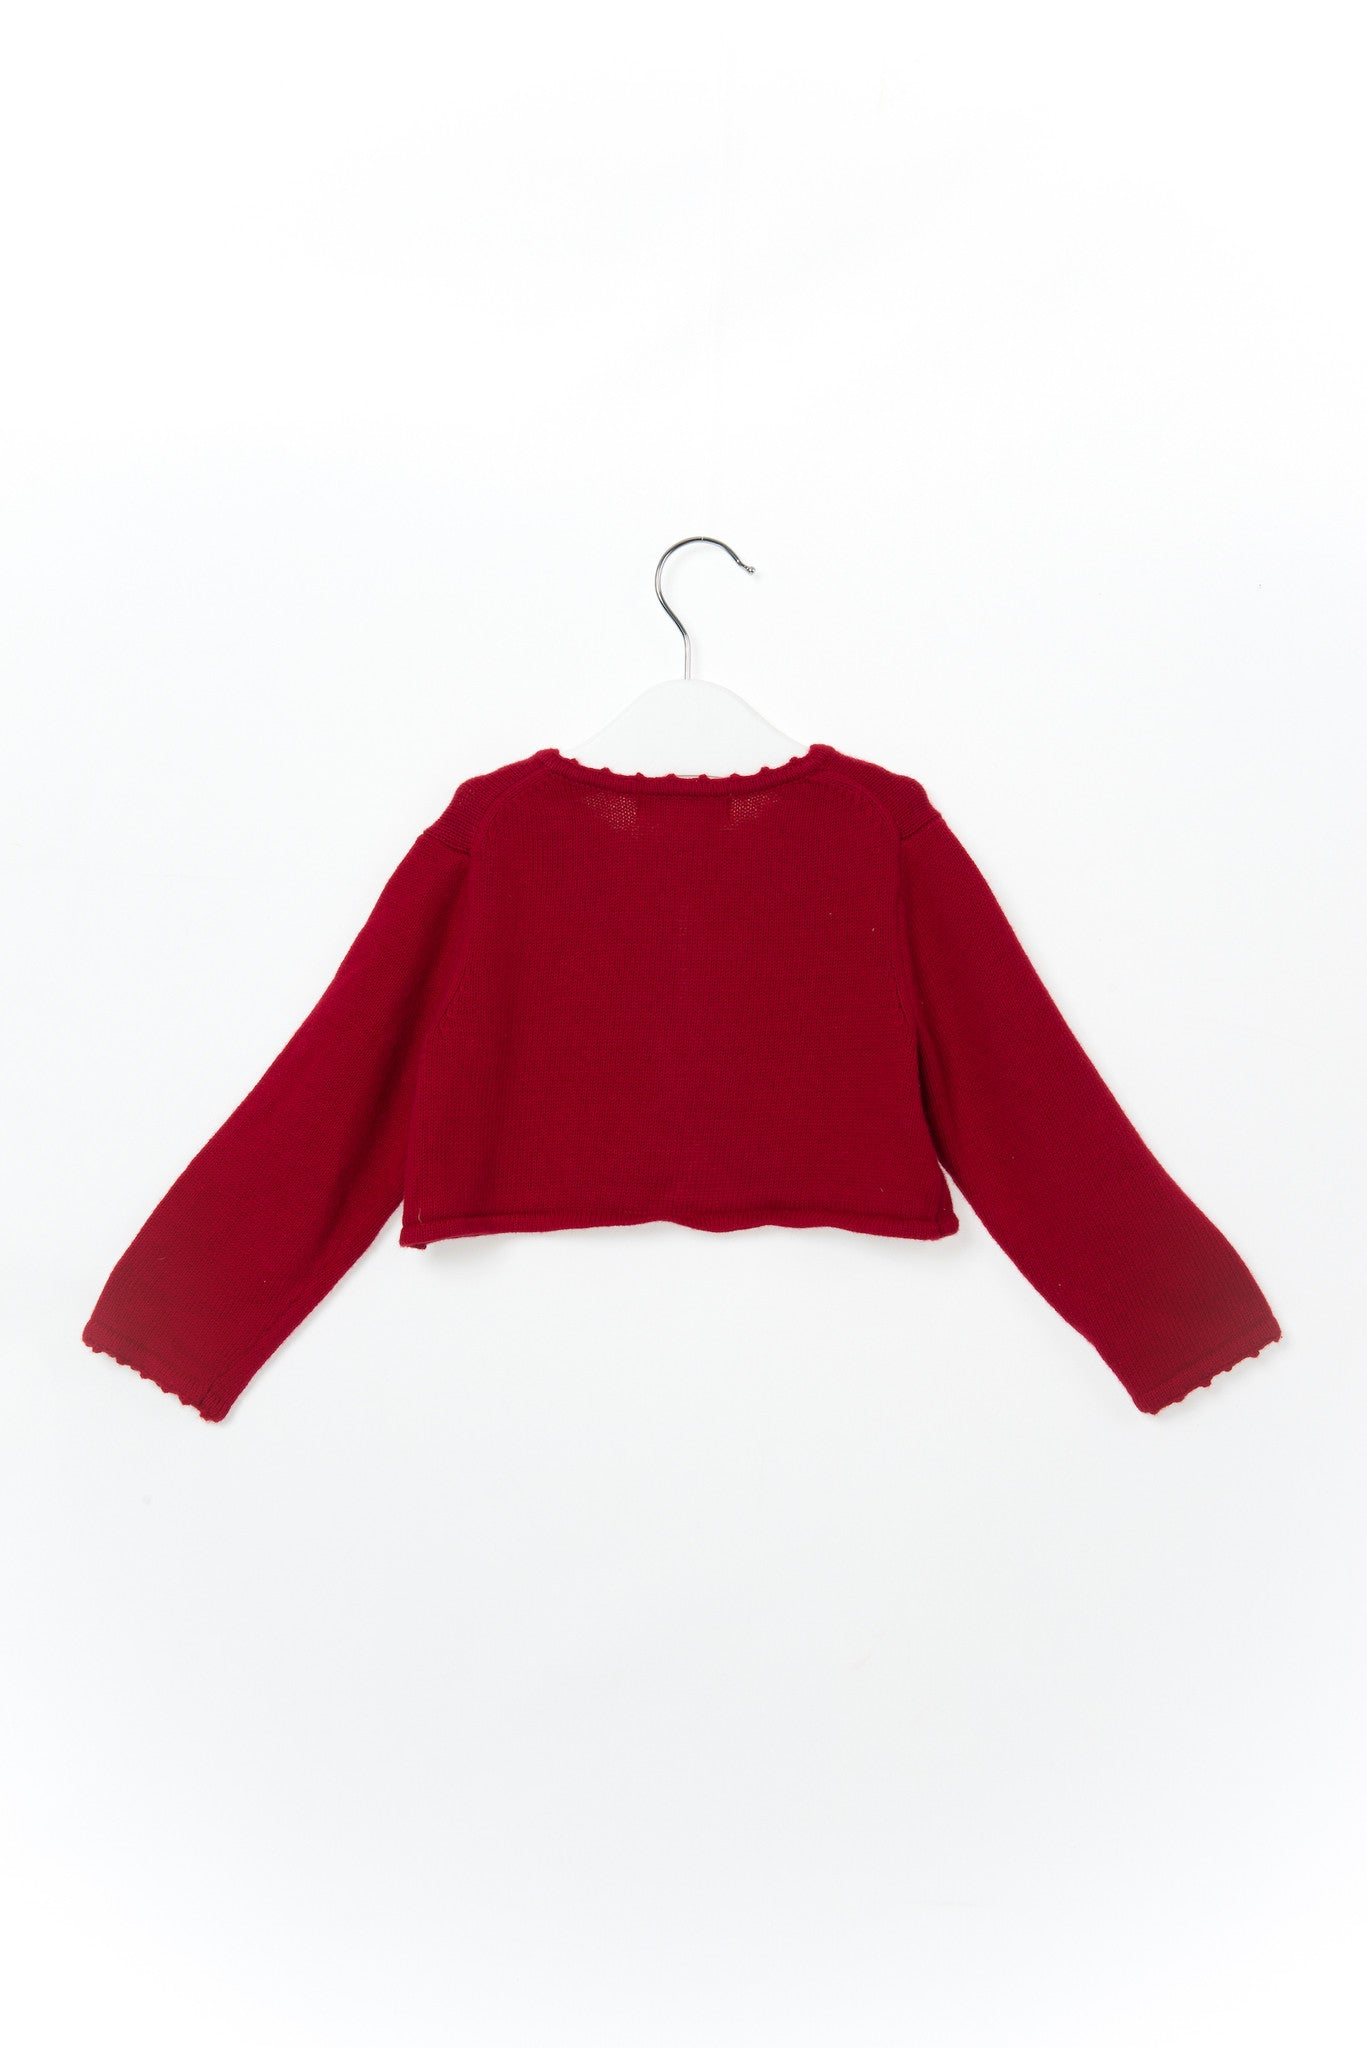 Cardigan 12-18M, Janie & Jack at Retykle - Online Baby & Kids Clothing Up to 90% Off